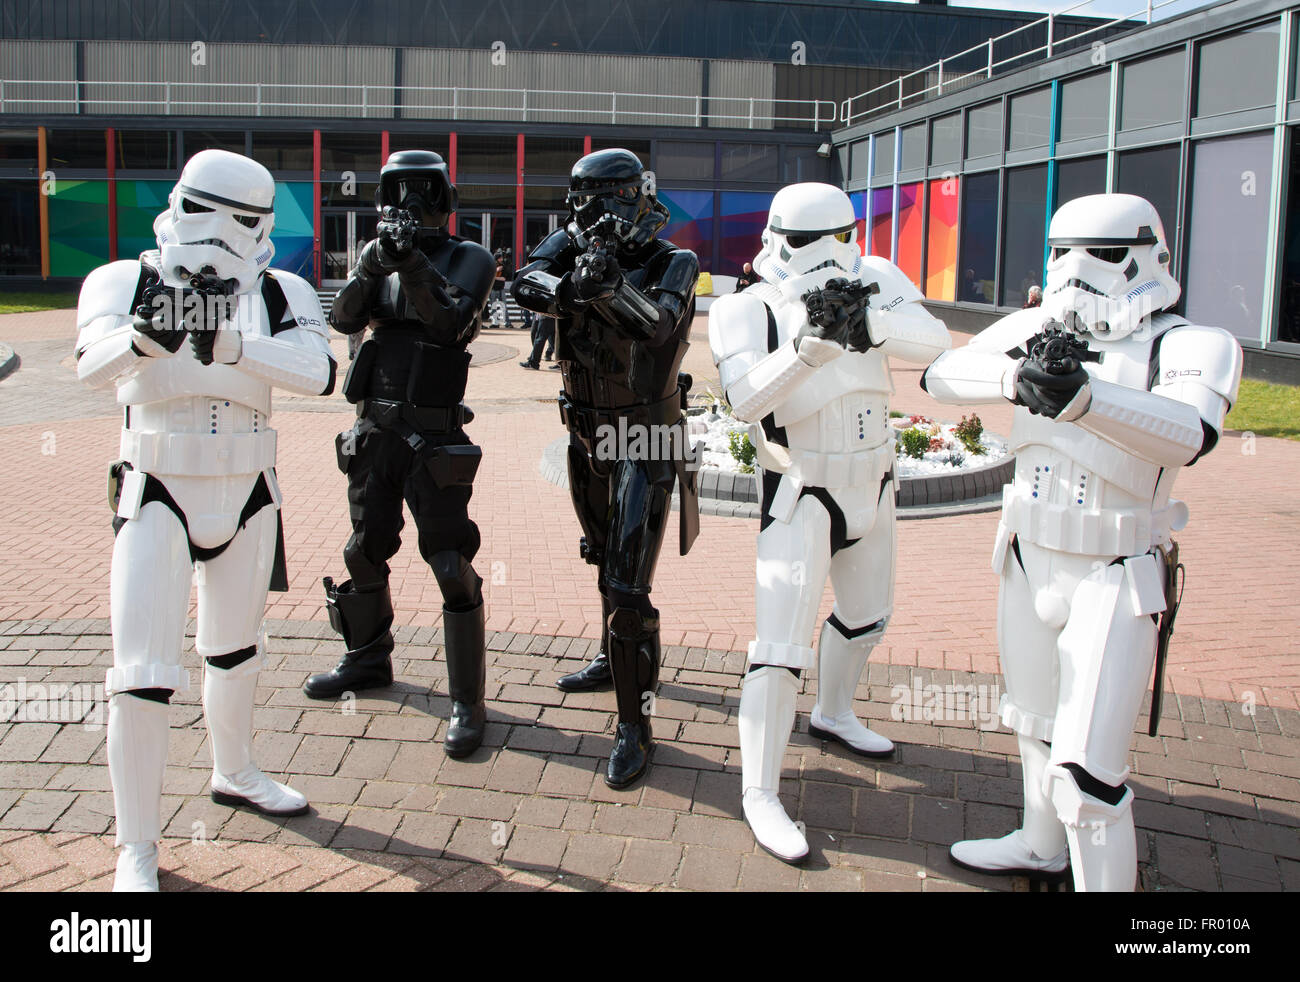 People dressed as various stormtroopers from Star Wars at Comic Con Credit:  steven roe/Alamy Live News - Stock Image